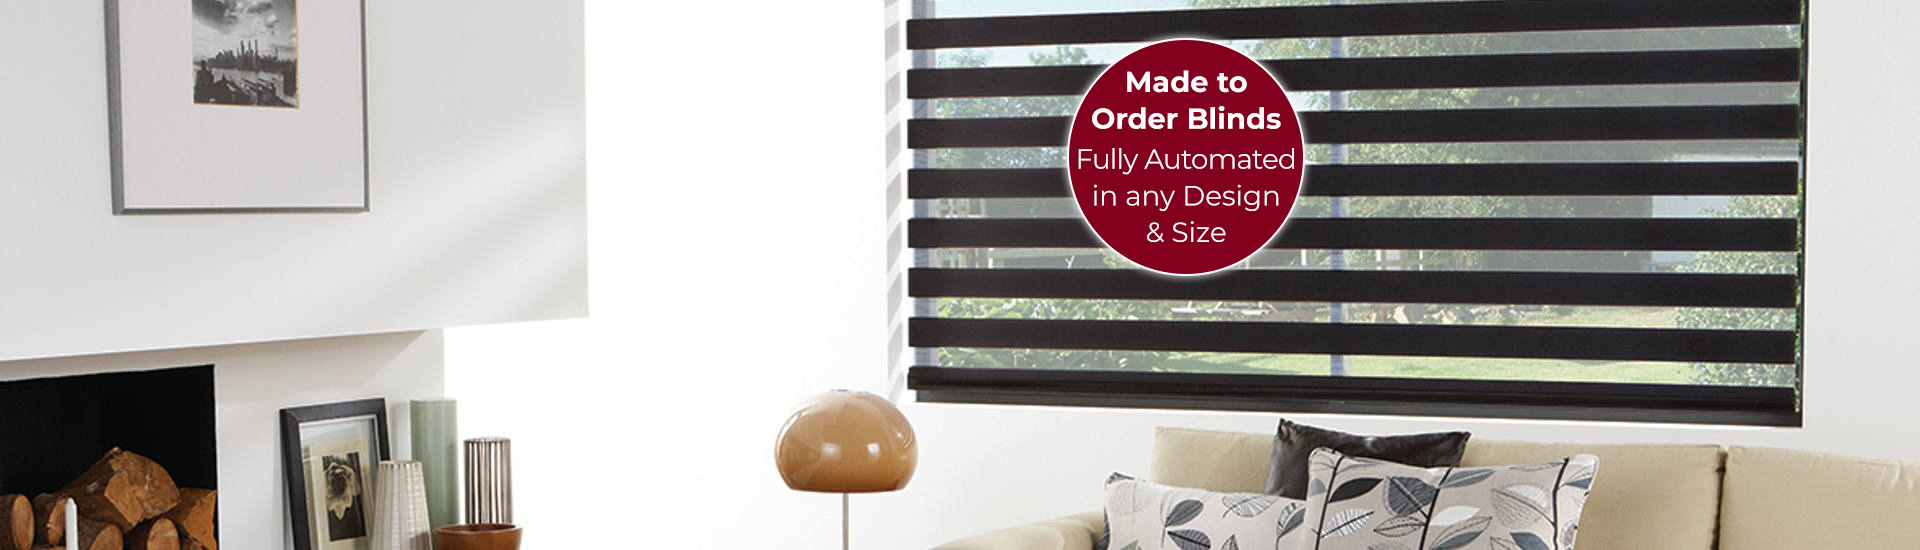 Electric Vision Blinds with Sticker